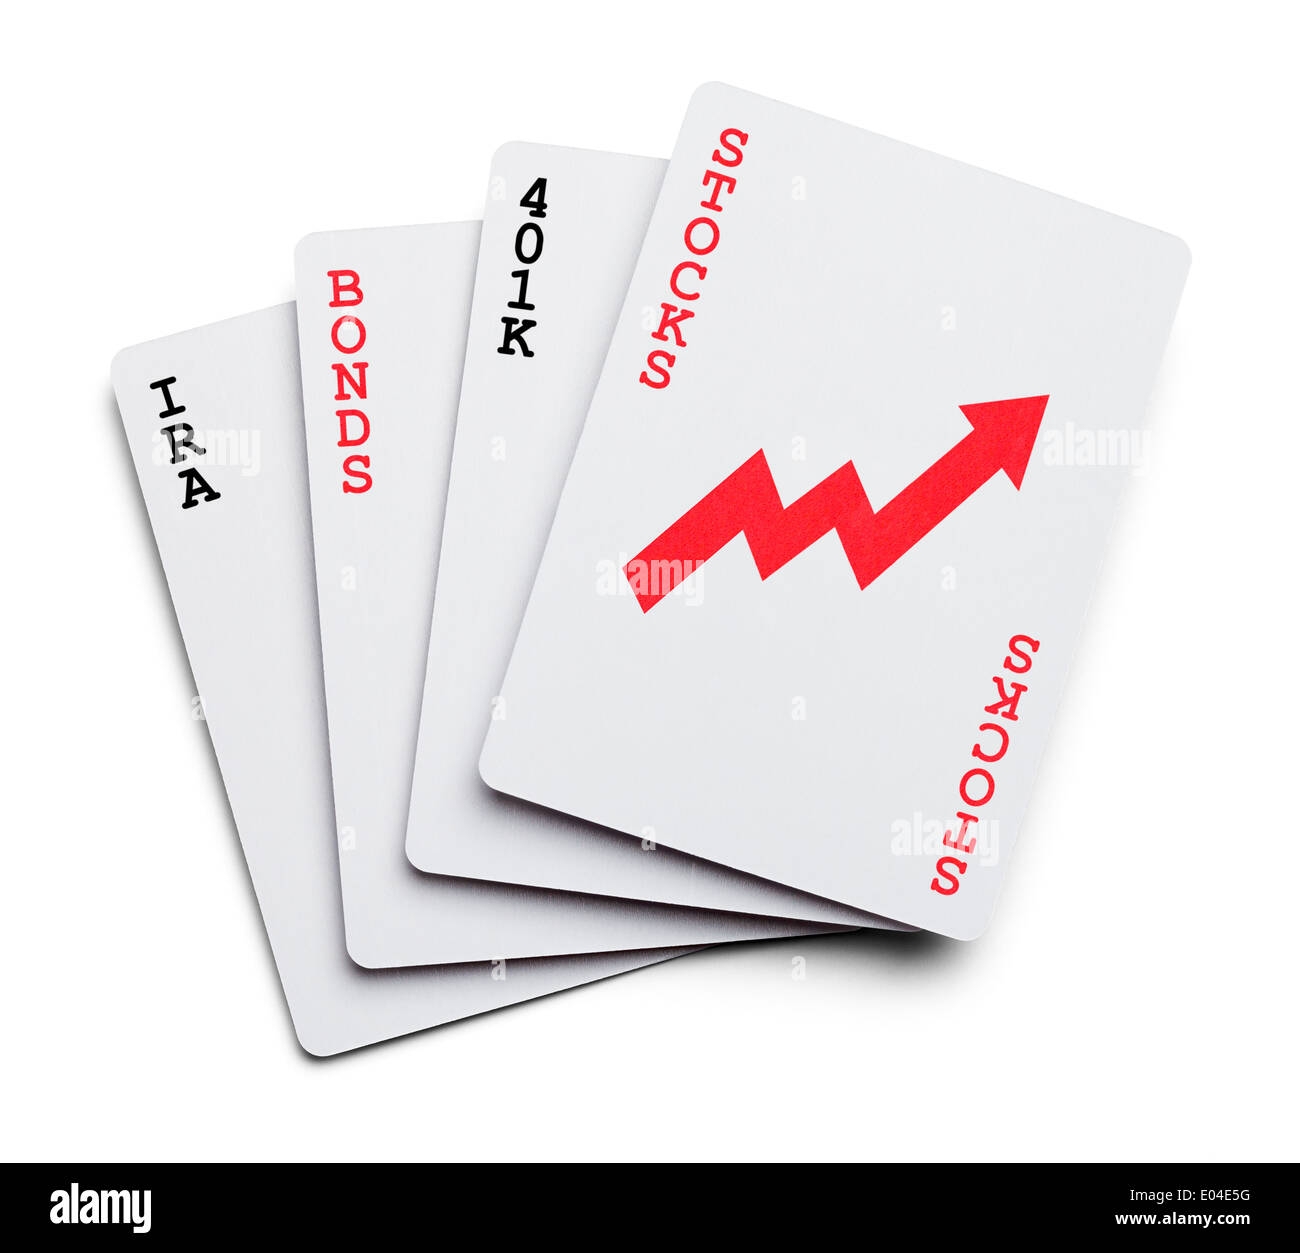 Playing Cards as Investment portfolio with the words Stocks, Bonds, IRA Isolated on White Background. - Stock Image